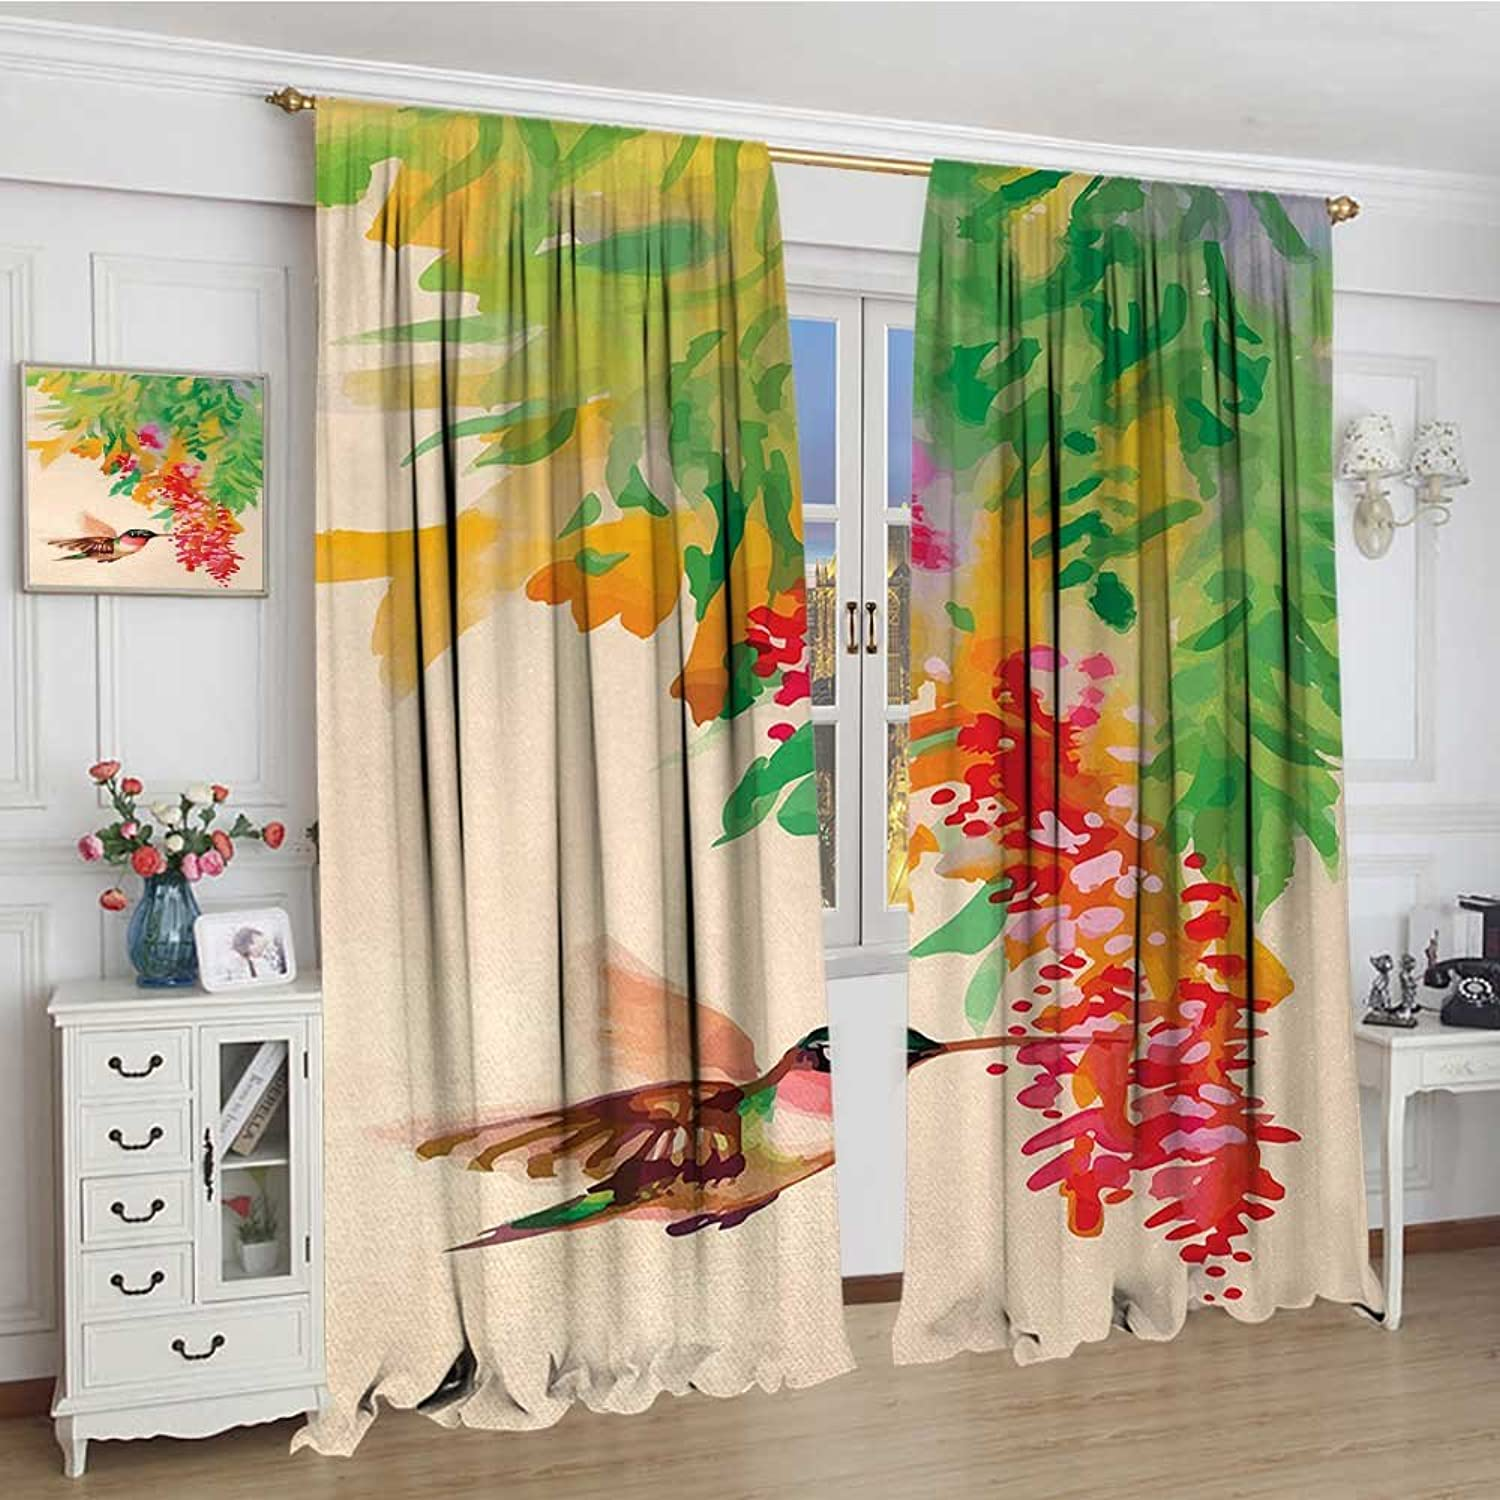 Smallbeefly Hummingbird Widened Blackout Window Curtain Image of Colibri Bird and Flowers Exotic Tree Bloom in Watercolor Effect Waterproof Window Curtain 120 x72  Green Red Beige